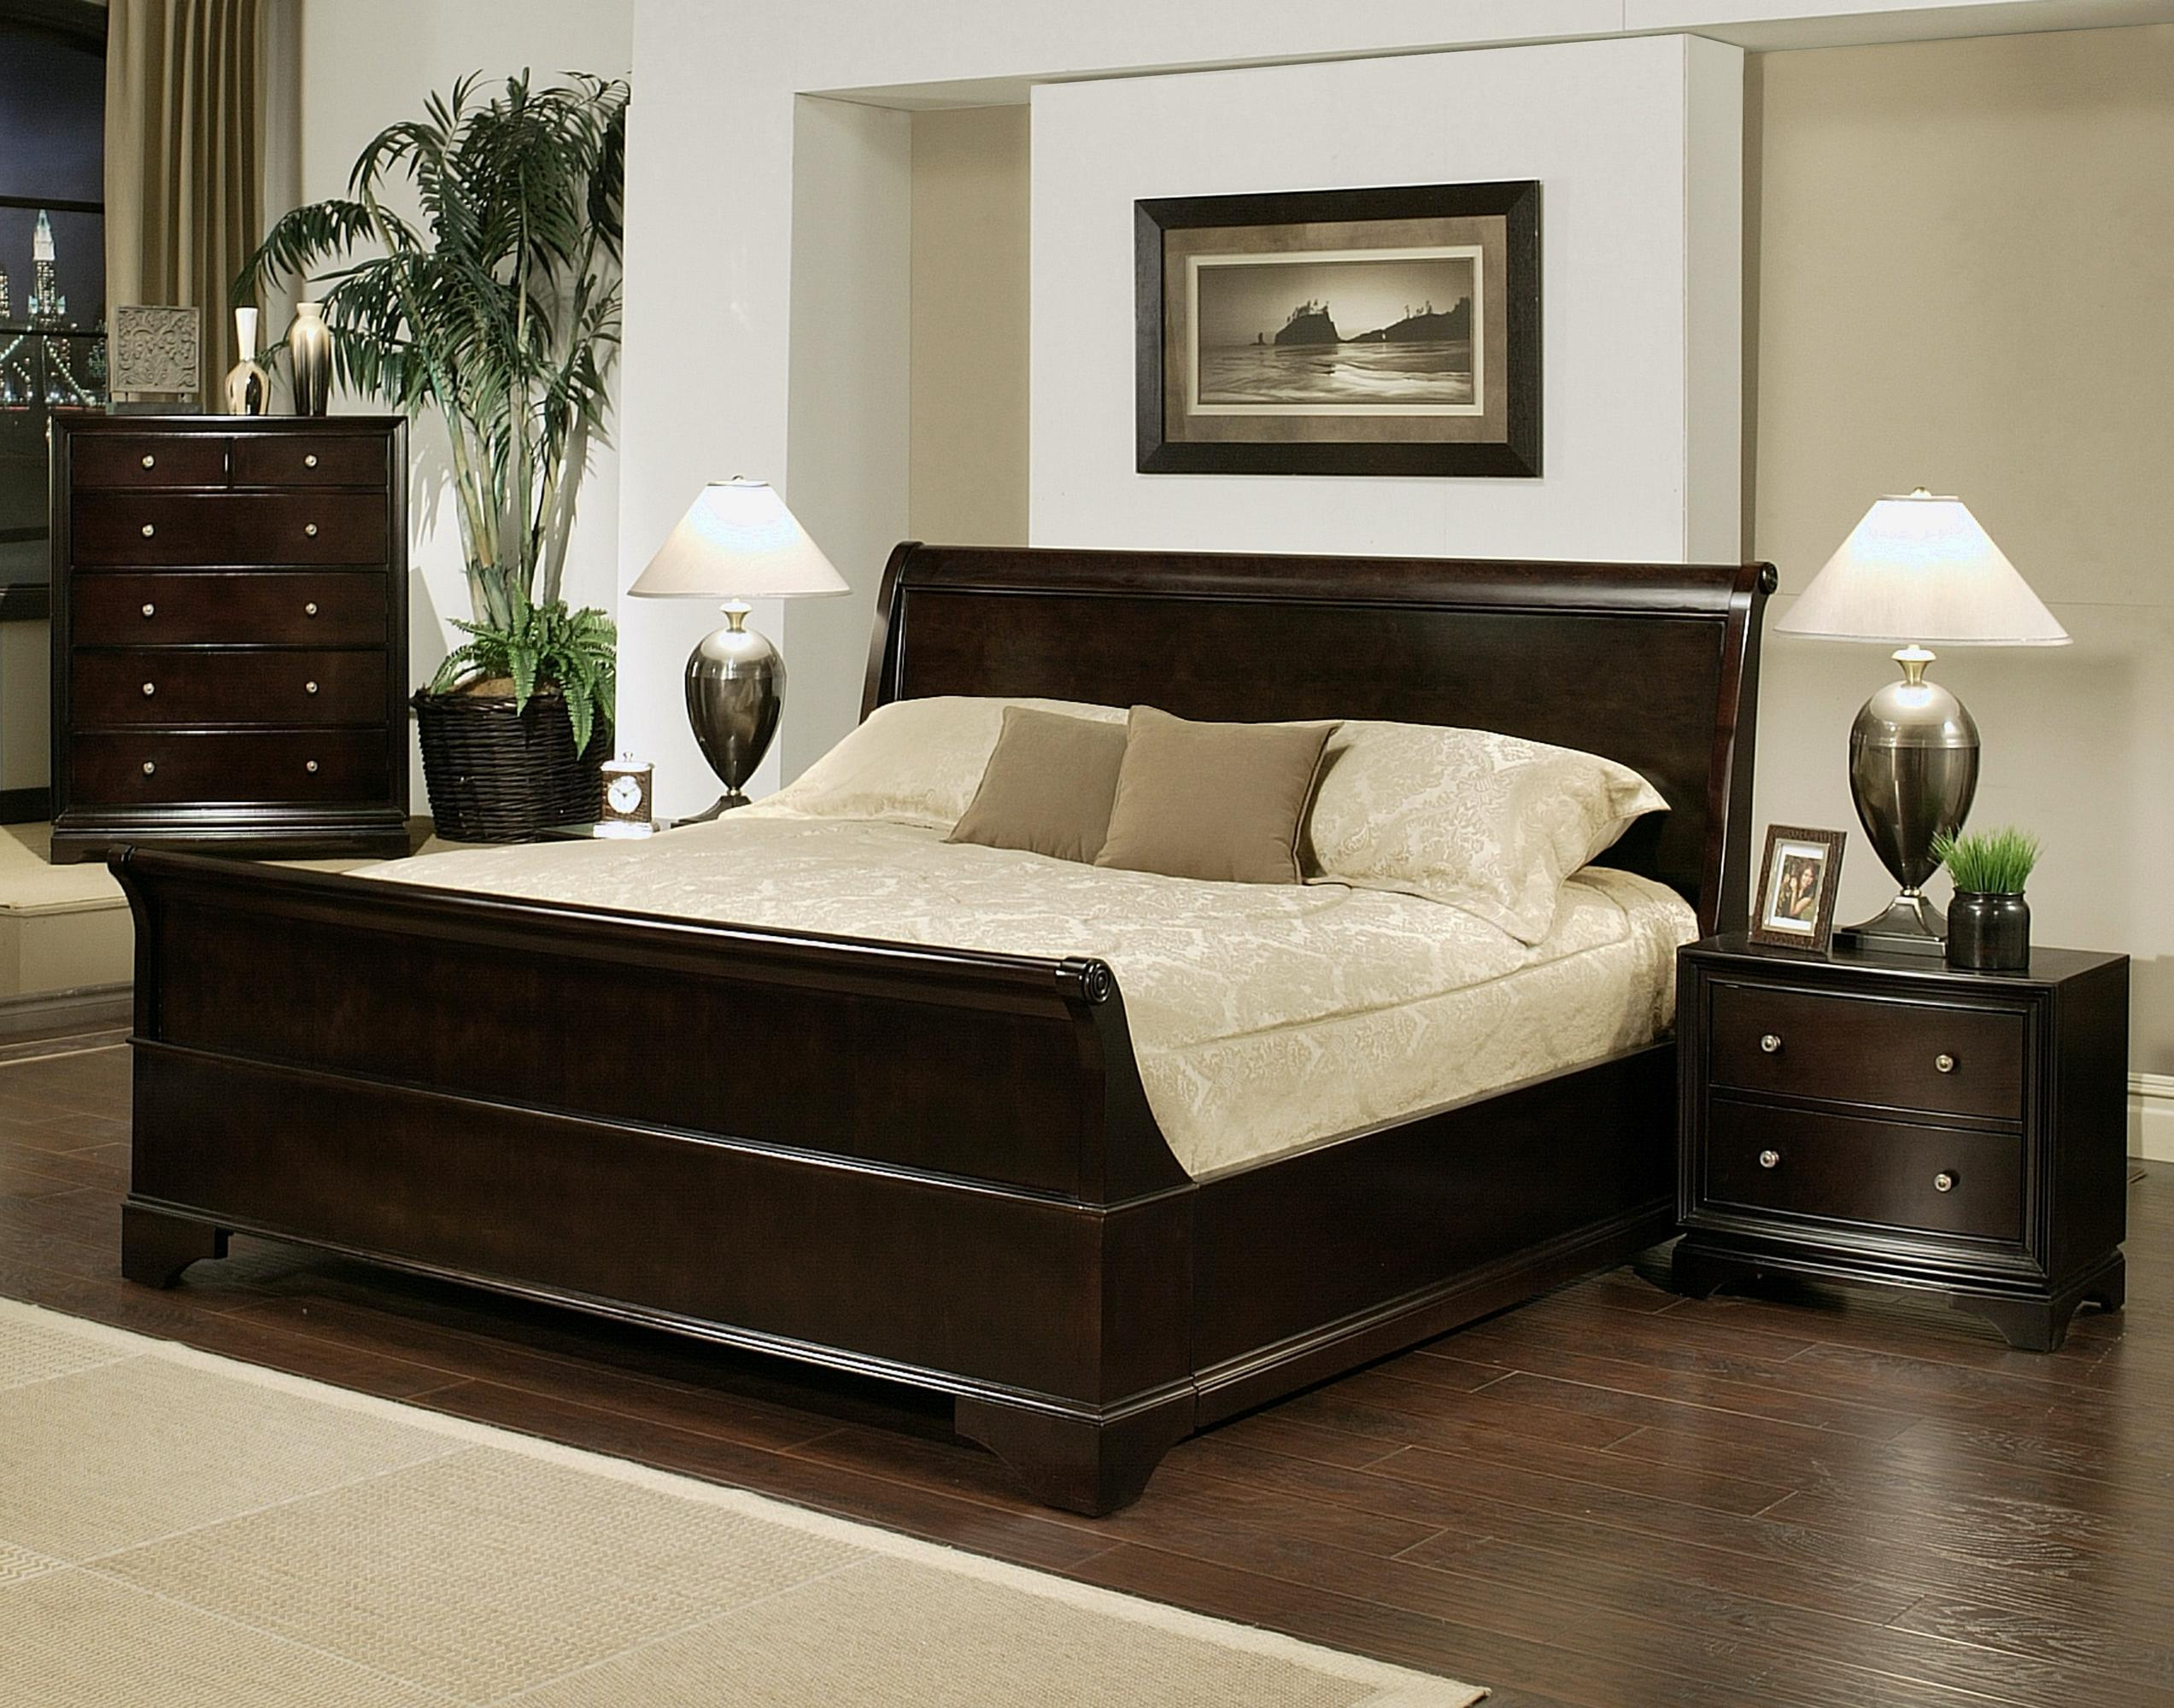 Image of: Contemporary Bedroom Sets King Size